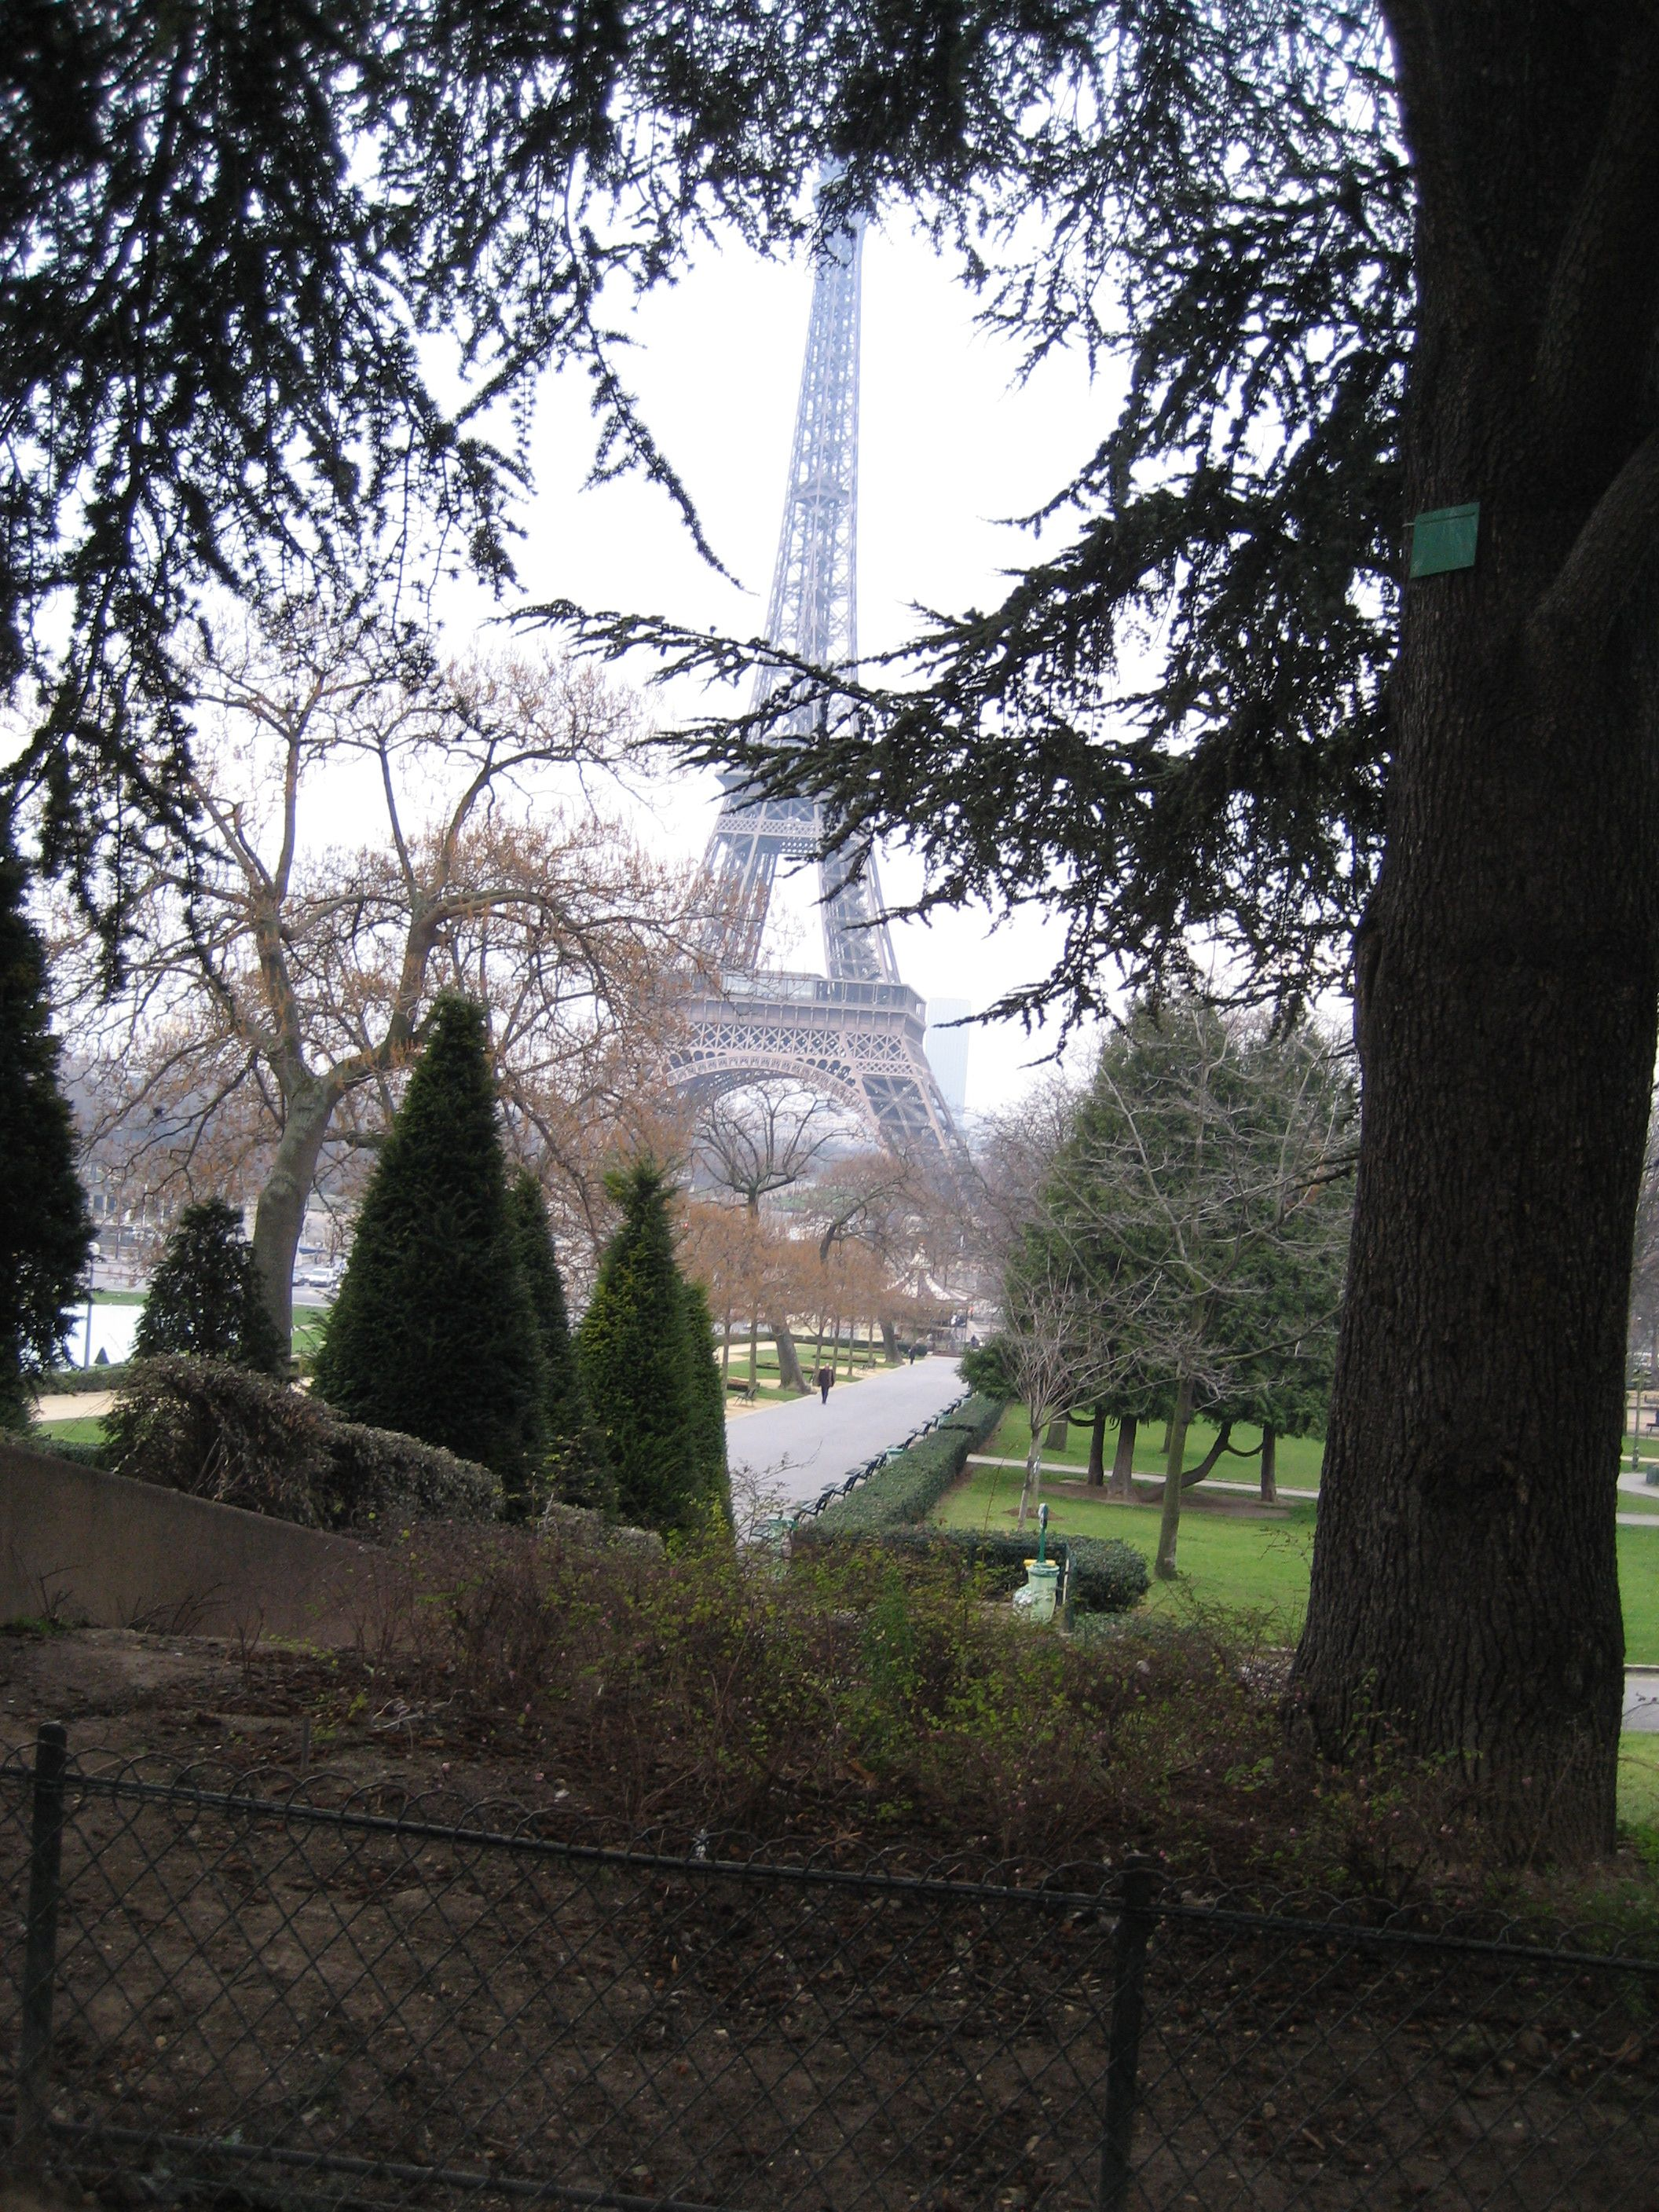 View from the park near the cinematique